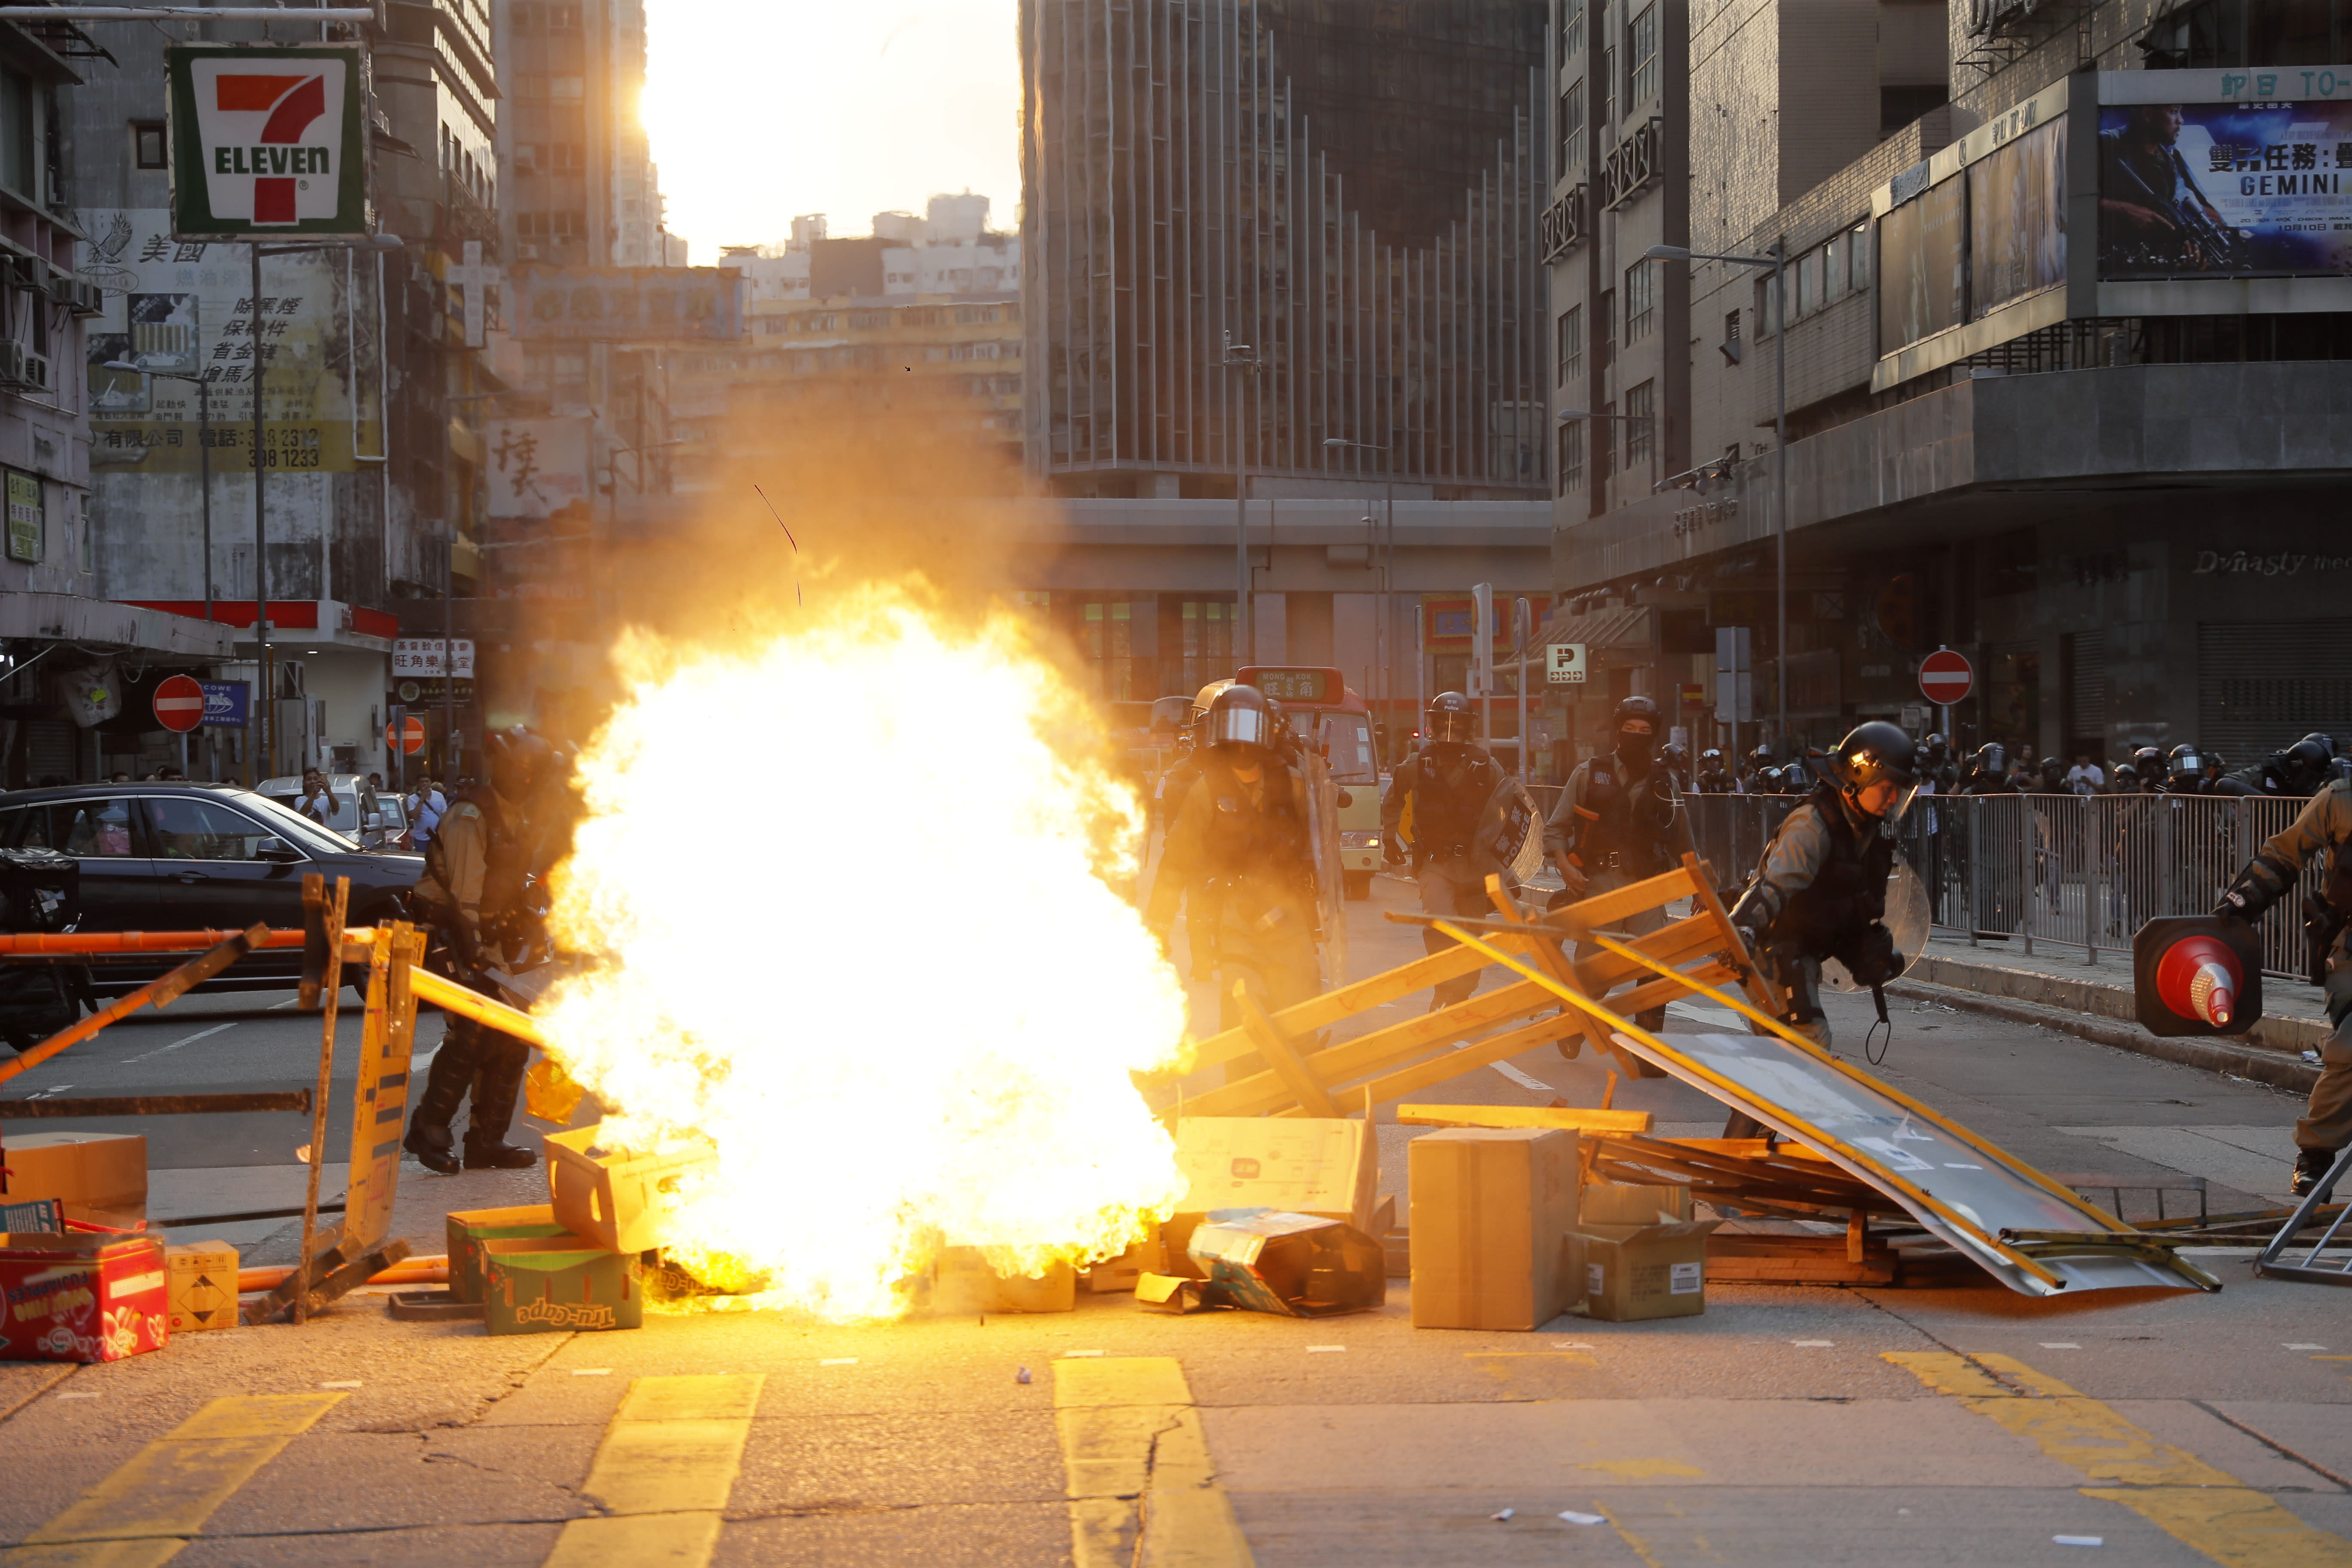 Protestors make fire to block traffic in Hong Kong, Sunday, Oct. 20, 2019. Hong Kong protesters again flooded streets on Sunday, ignoring a police ban on the rally and setting up barricades amid tear gas and firebombs. (AP Photo/Kin Cheung)